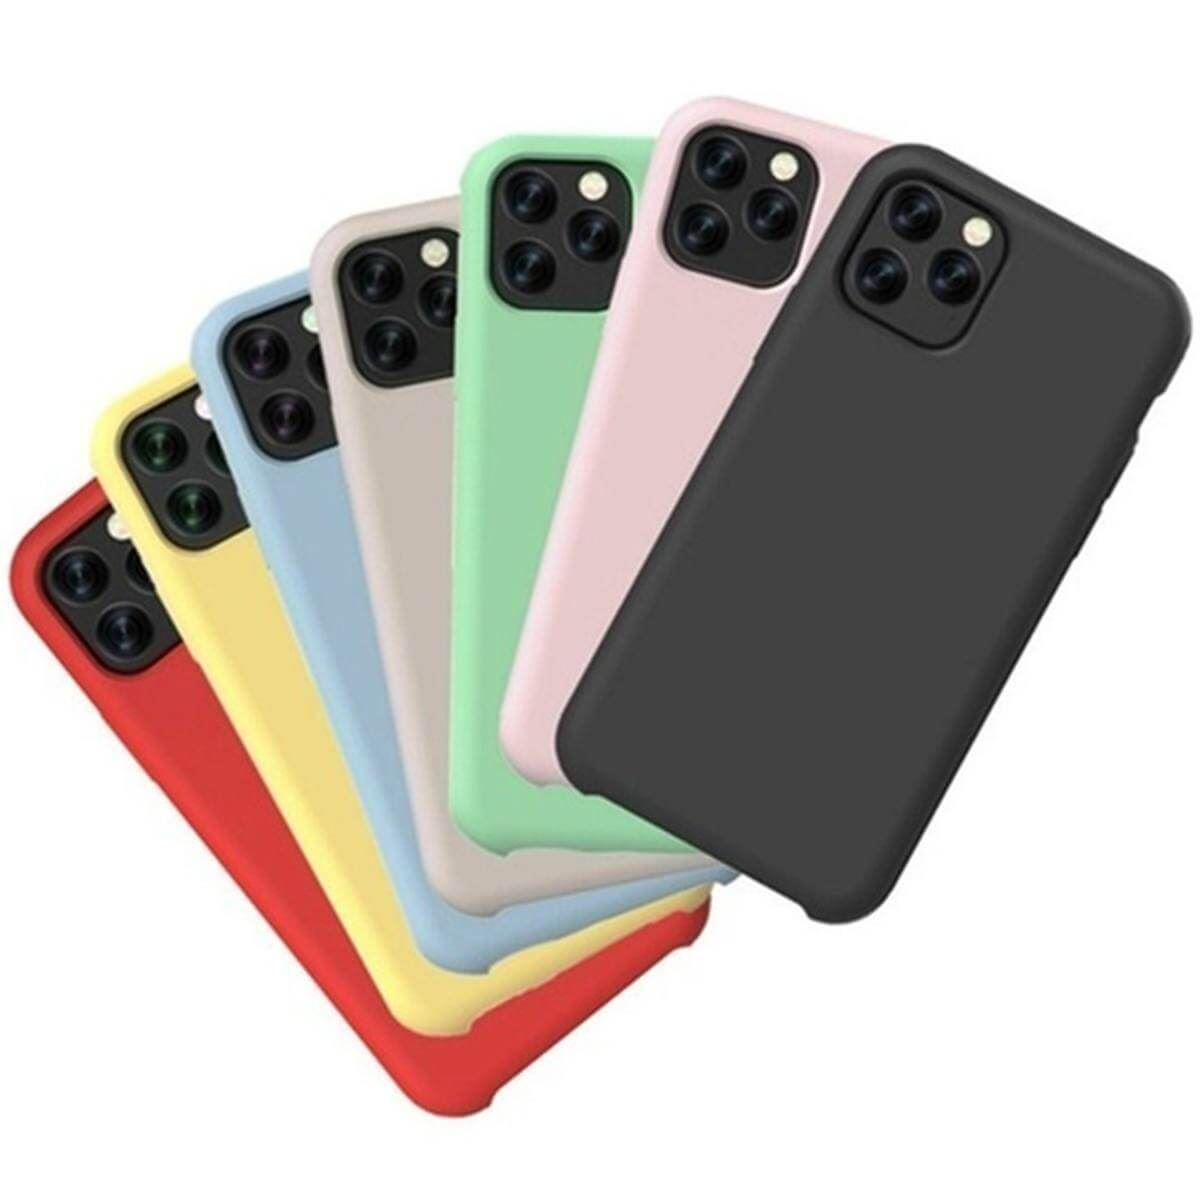 Liquid-Silicone-Shockproof-Case-For-Apple-iPhone-Soft-Matte-Back-Phone-Cover thumbnail 13